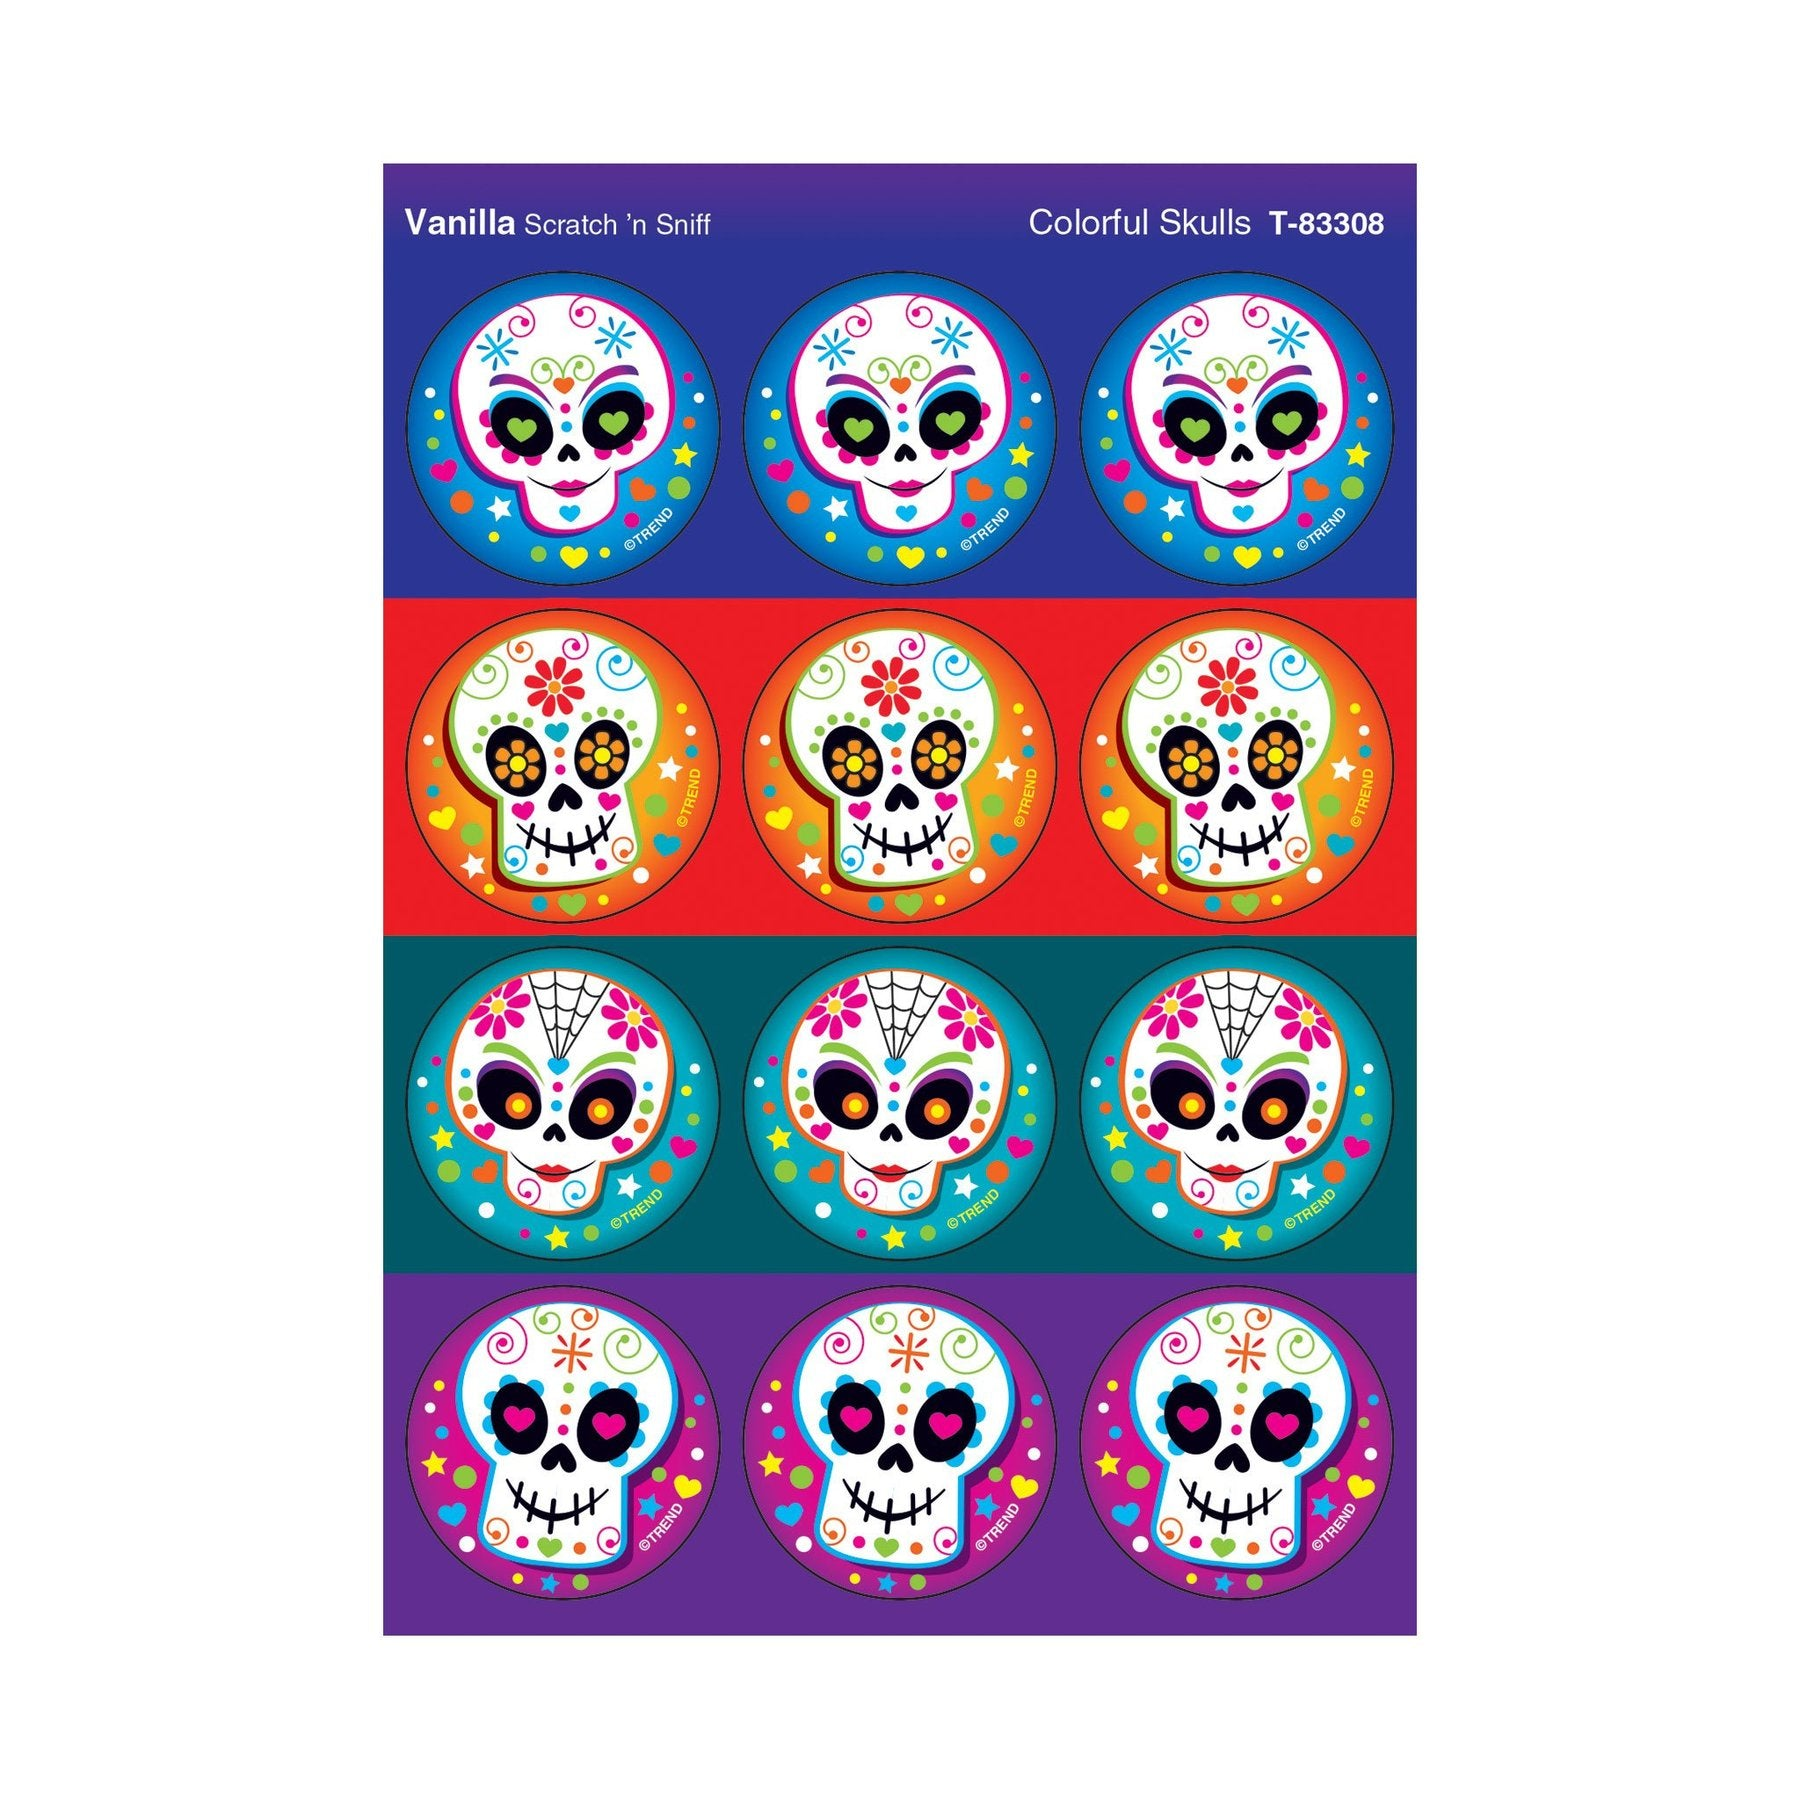 Stinky Stickers Scratch and Sniff, Colorful Skulls, Vanilla Scent T-83308